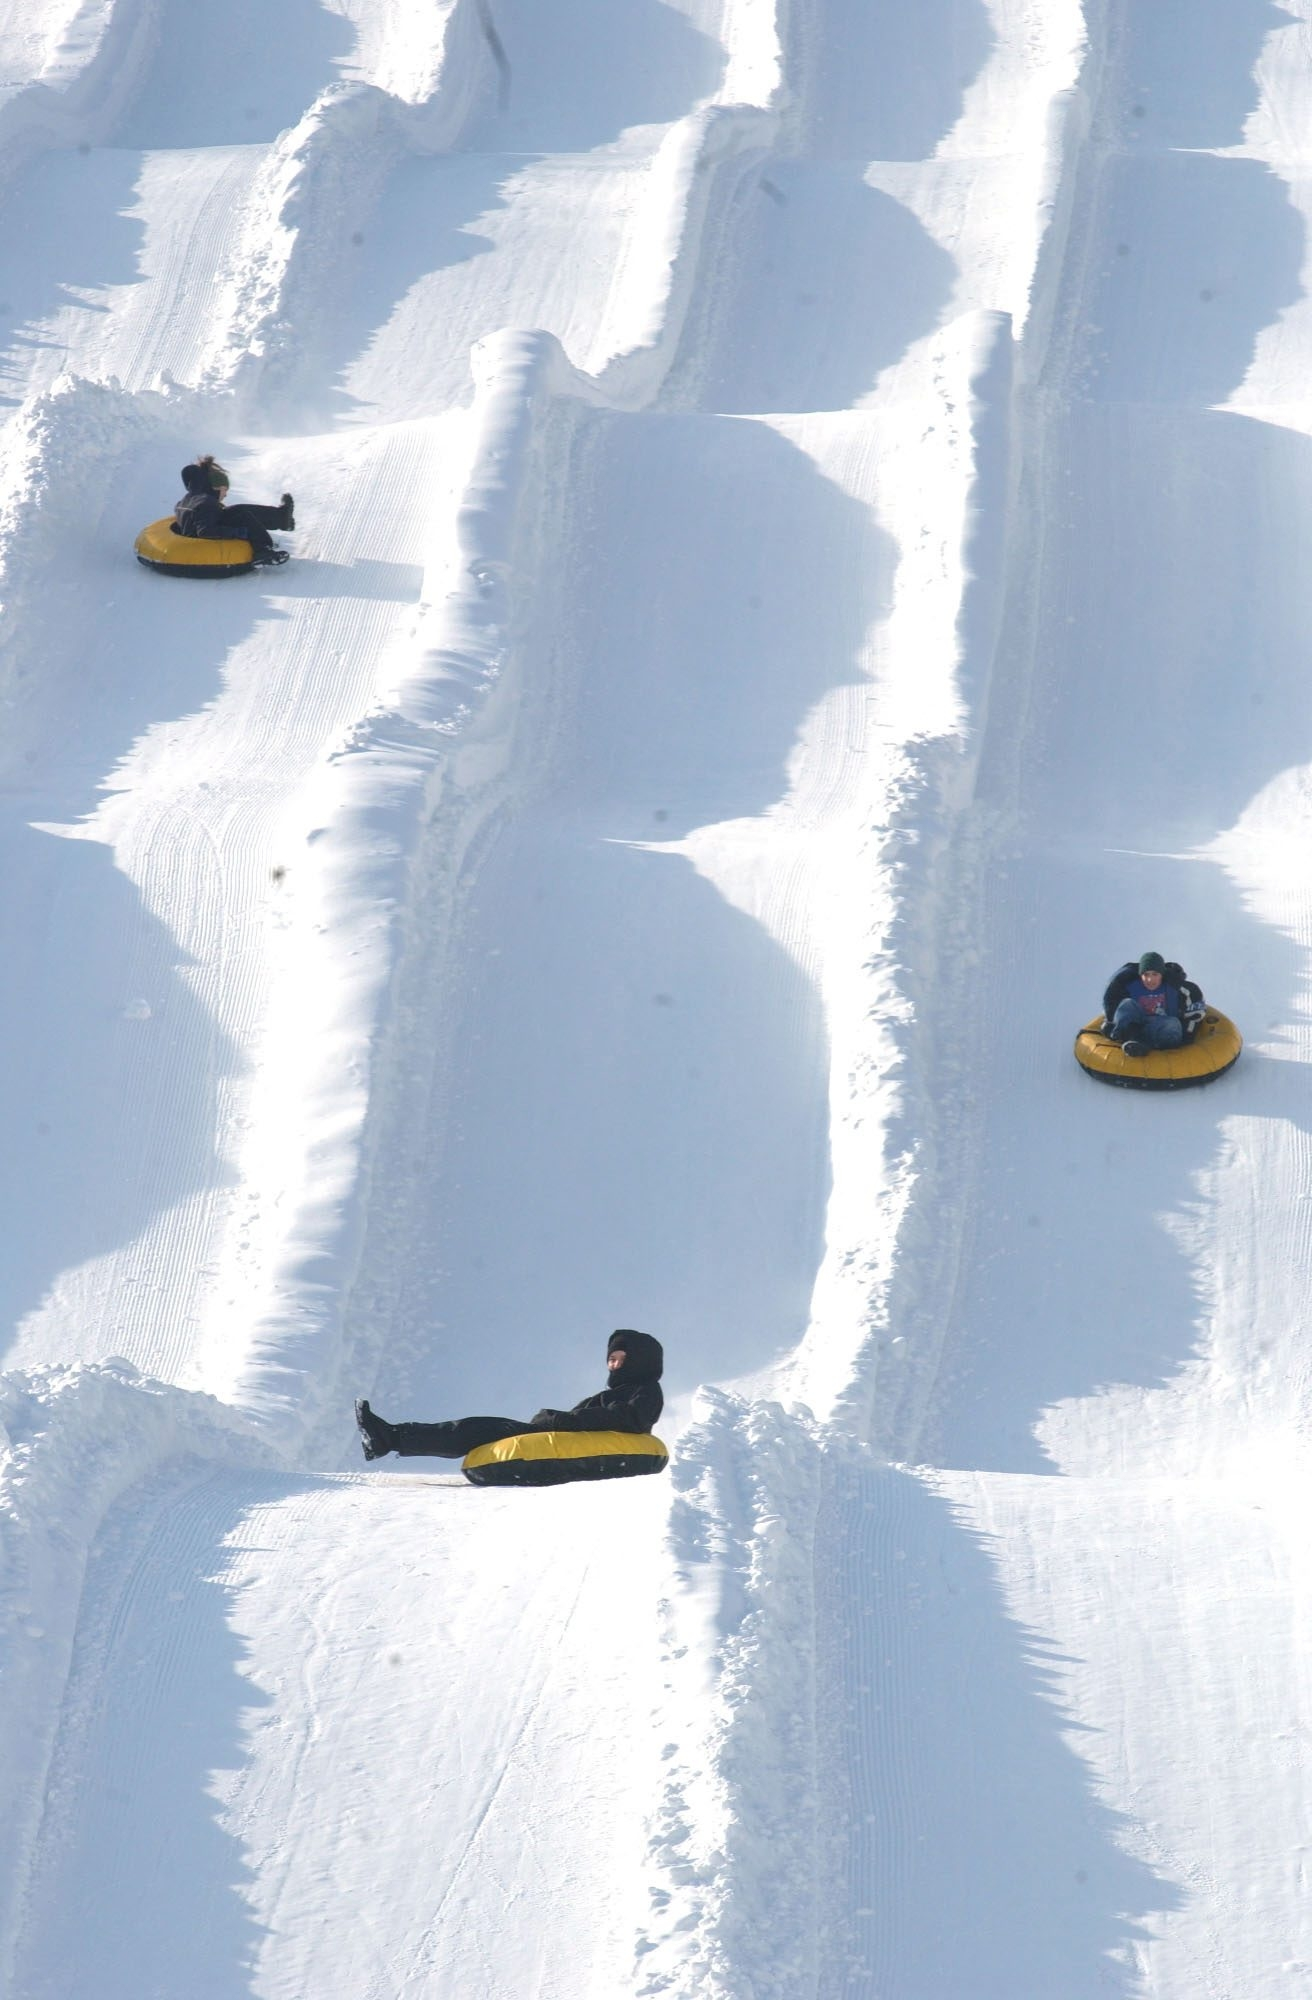 People tubing at Colden Tubing Co. are shown in a file photo. (News file photo)